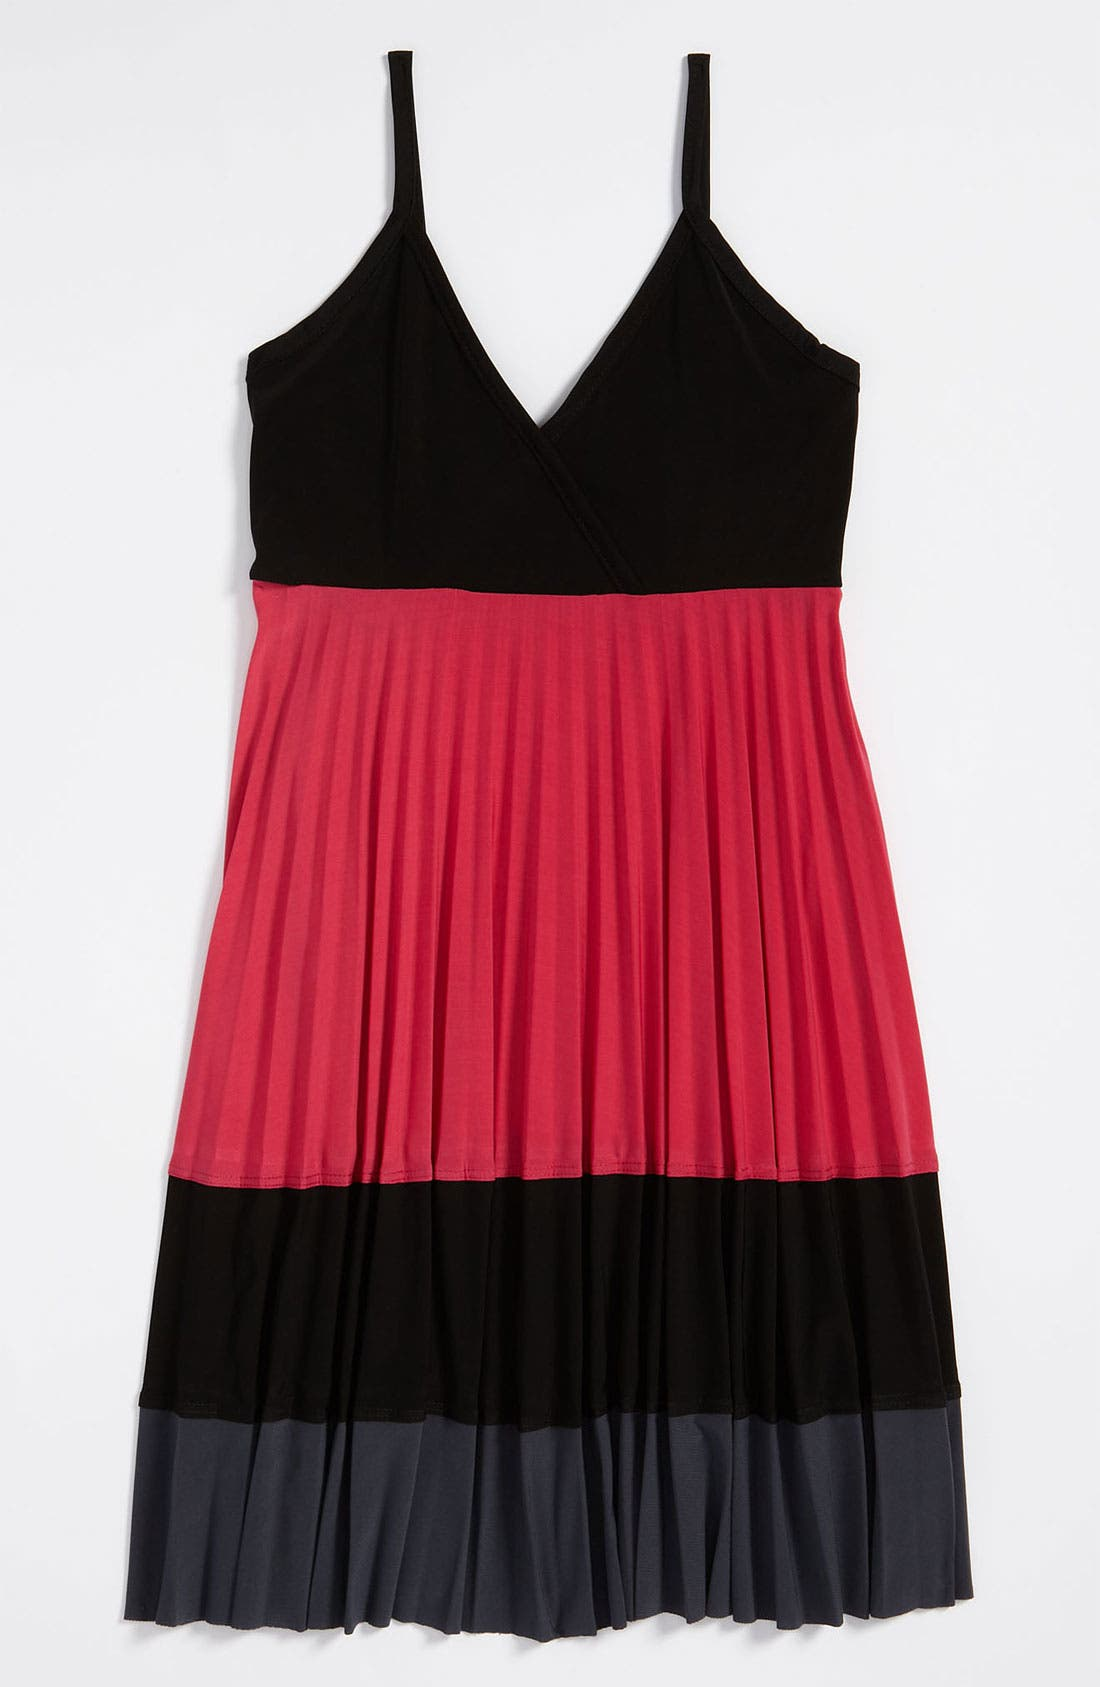 Alternate Image 1 Selected - Un Deux Trois Colorblock Dress (Big Girls)